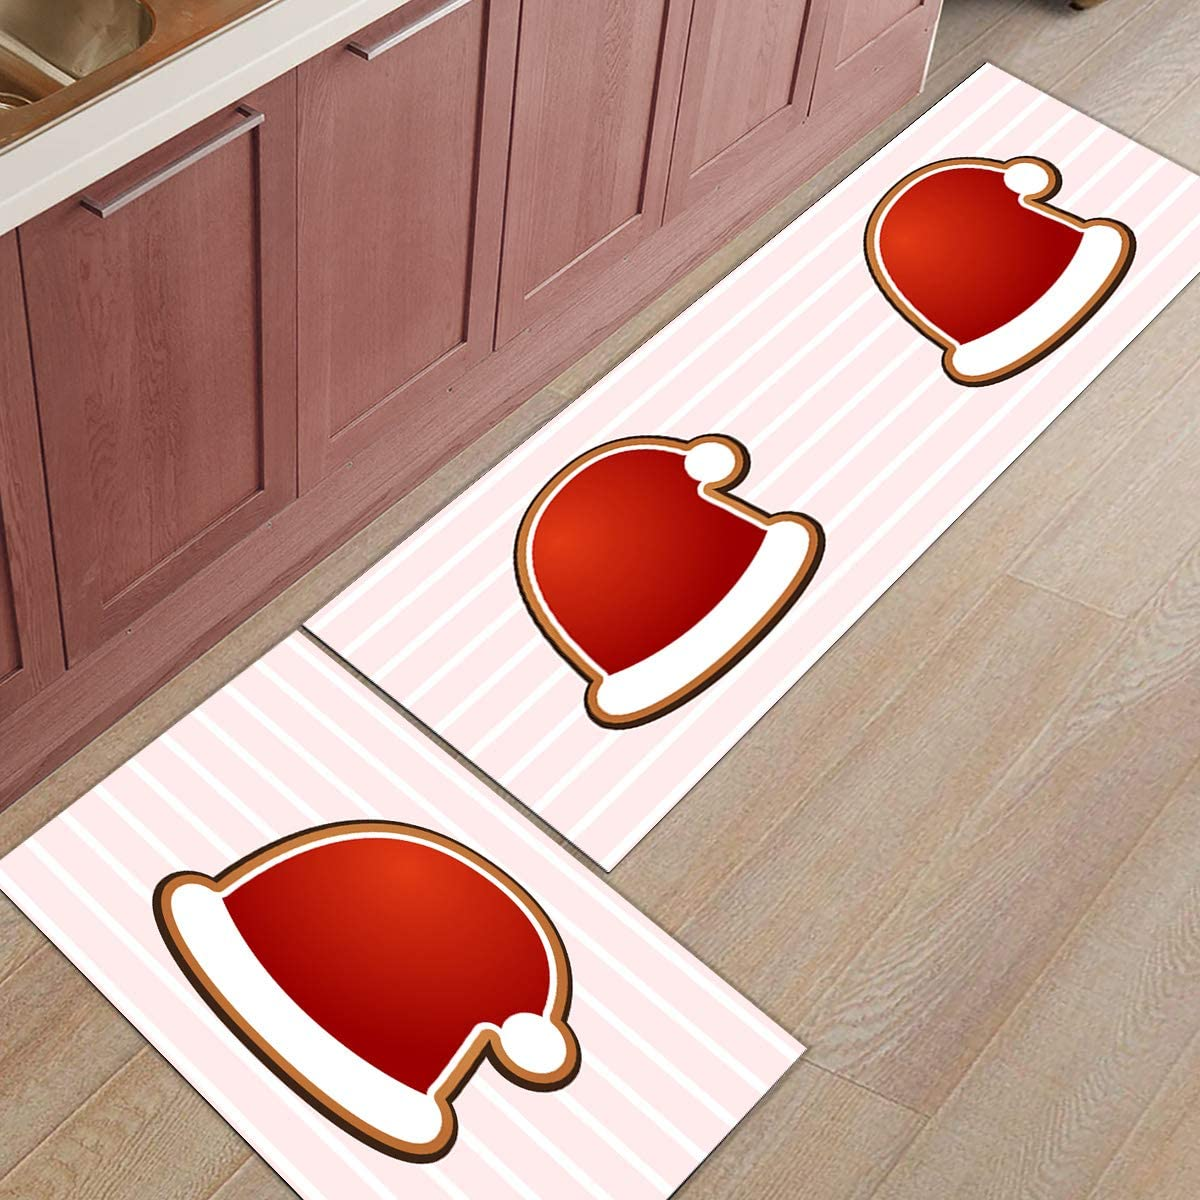 Christmas Cheap mail order specialty store 2 Manufacturer direct delivery Pieces Mats No Slip K Rug Washable for Throw Runner